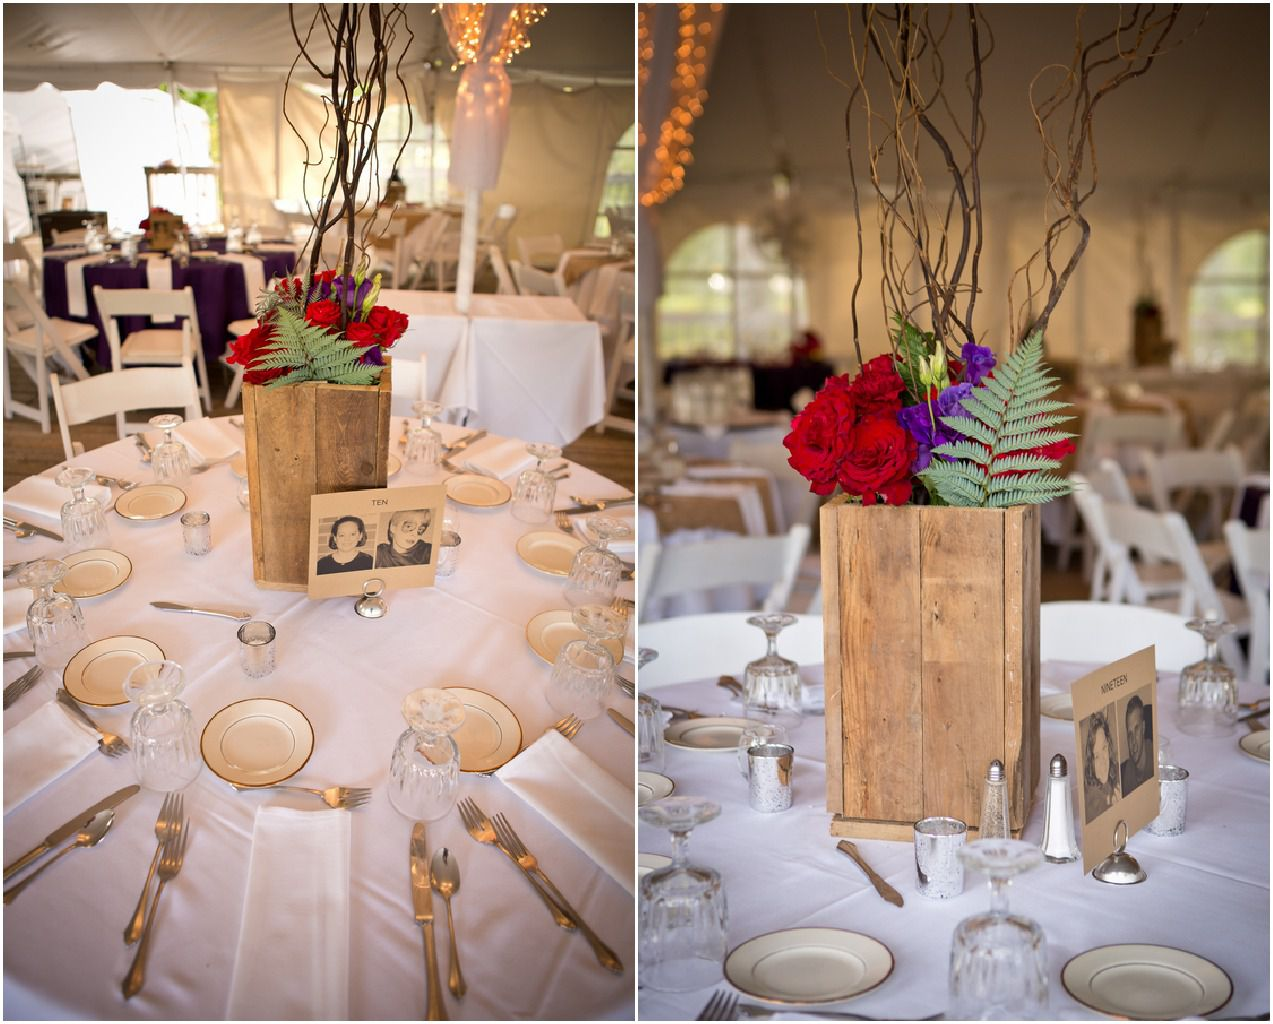 weddings table decorations rustic vintage indiana wedding rustic wedding chic 1234